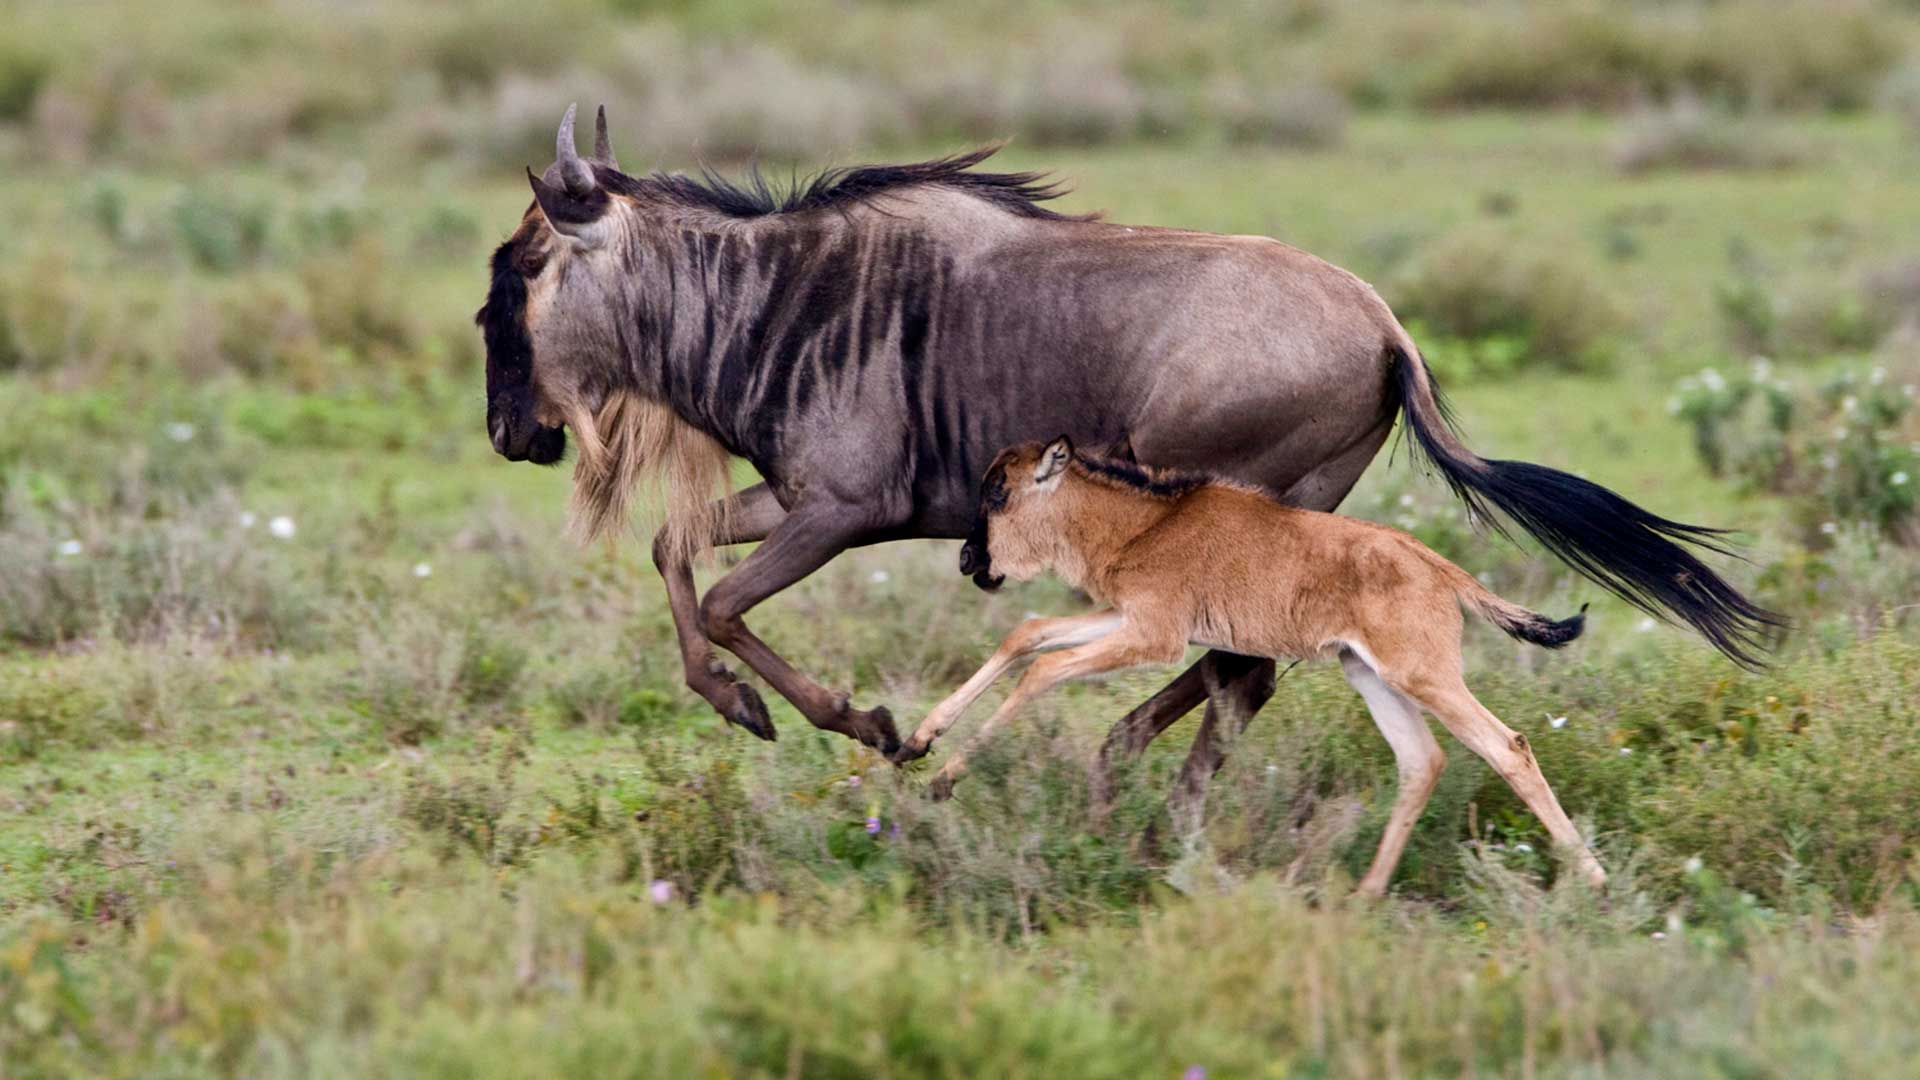 Wildebeest mother and baby running, Tanzania.